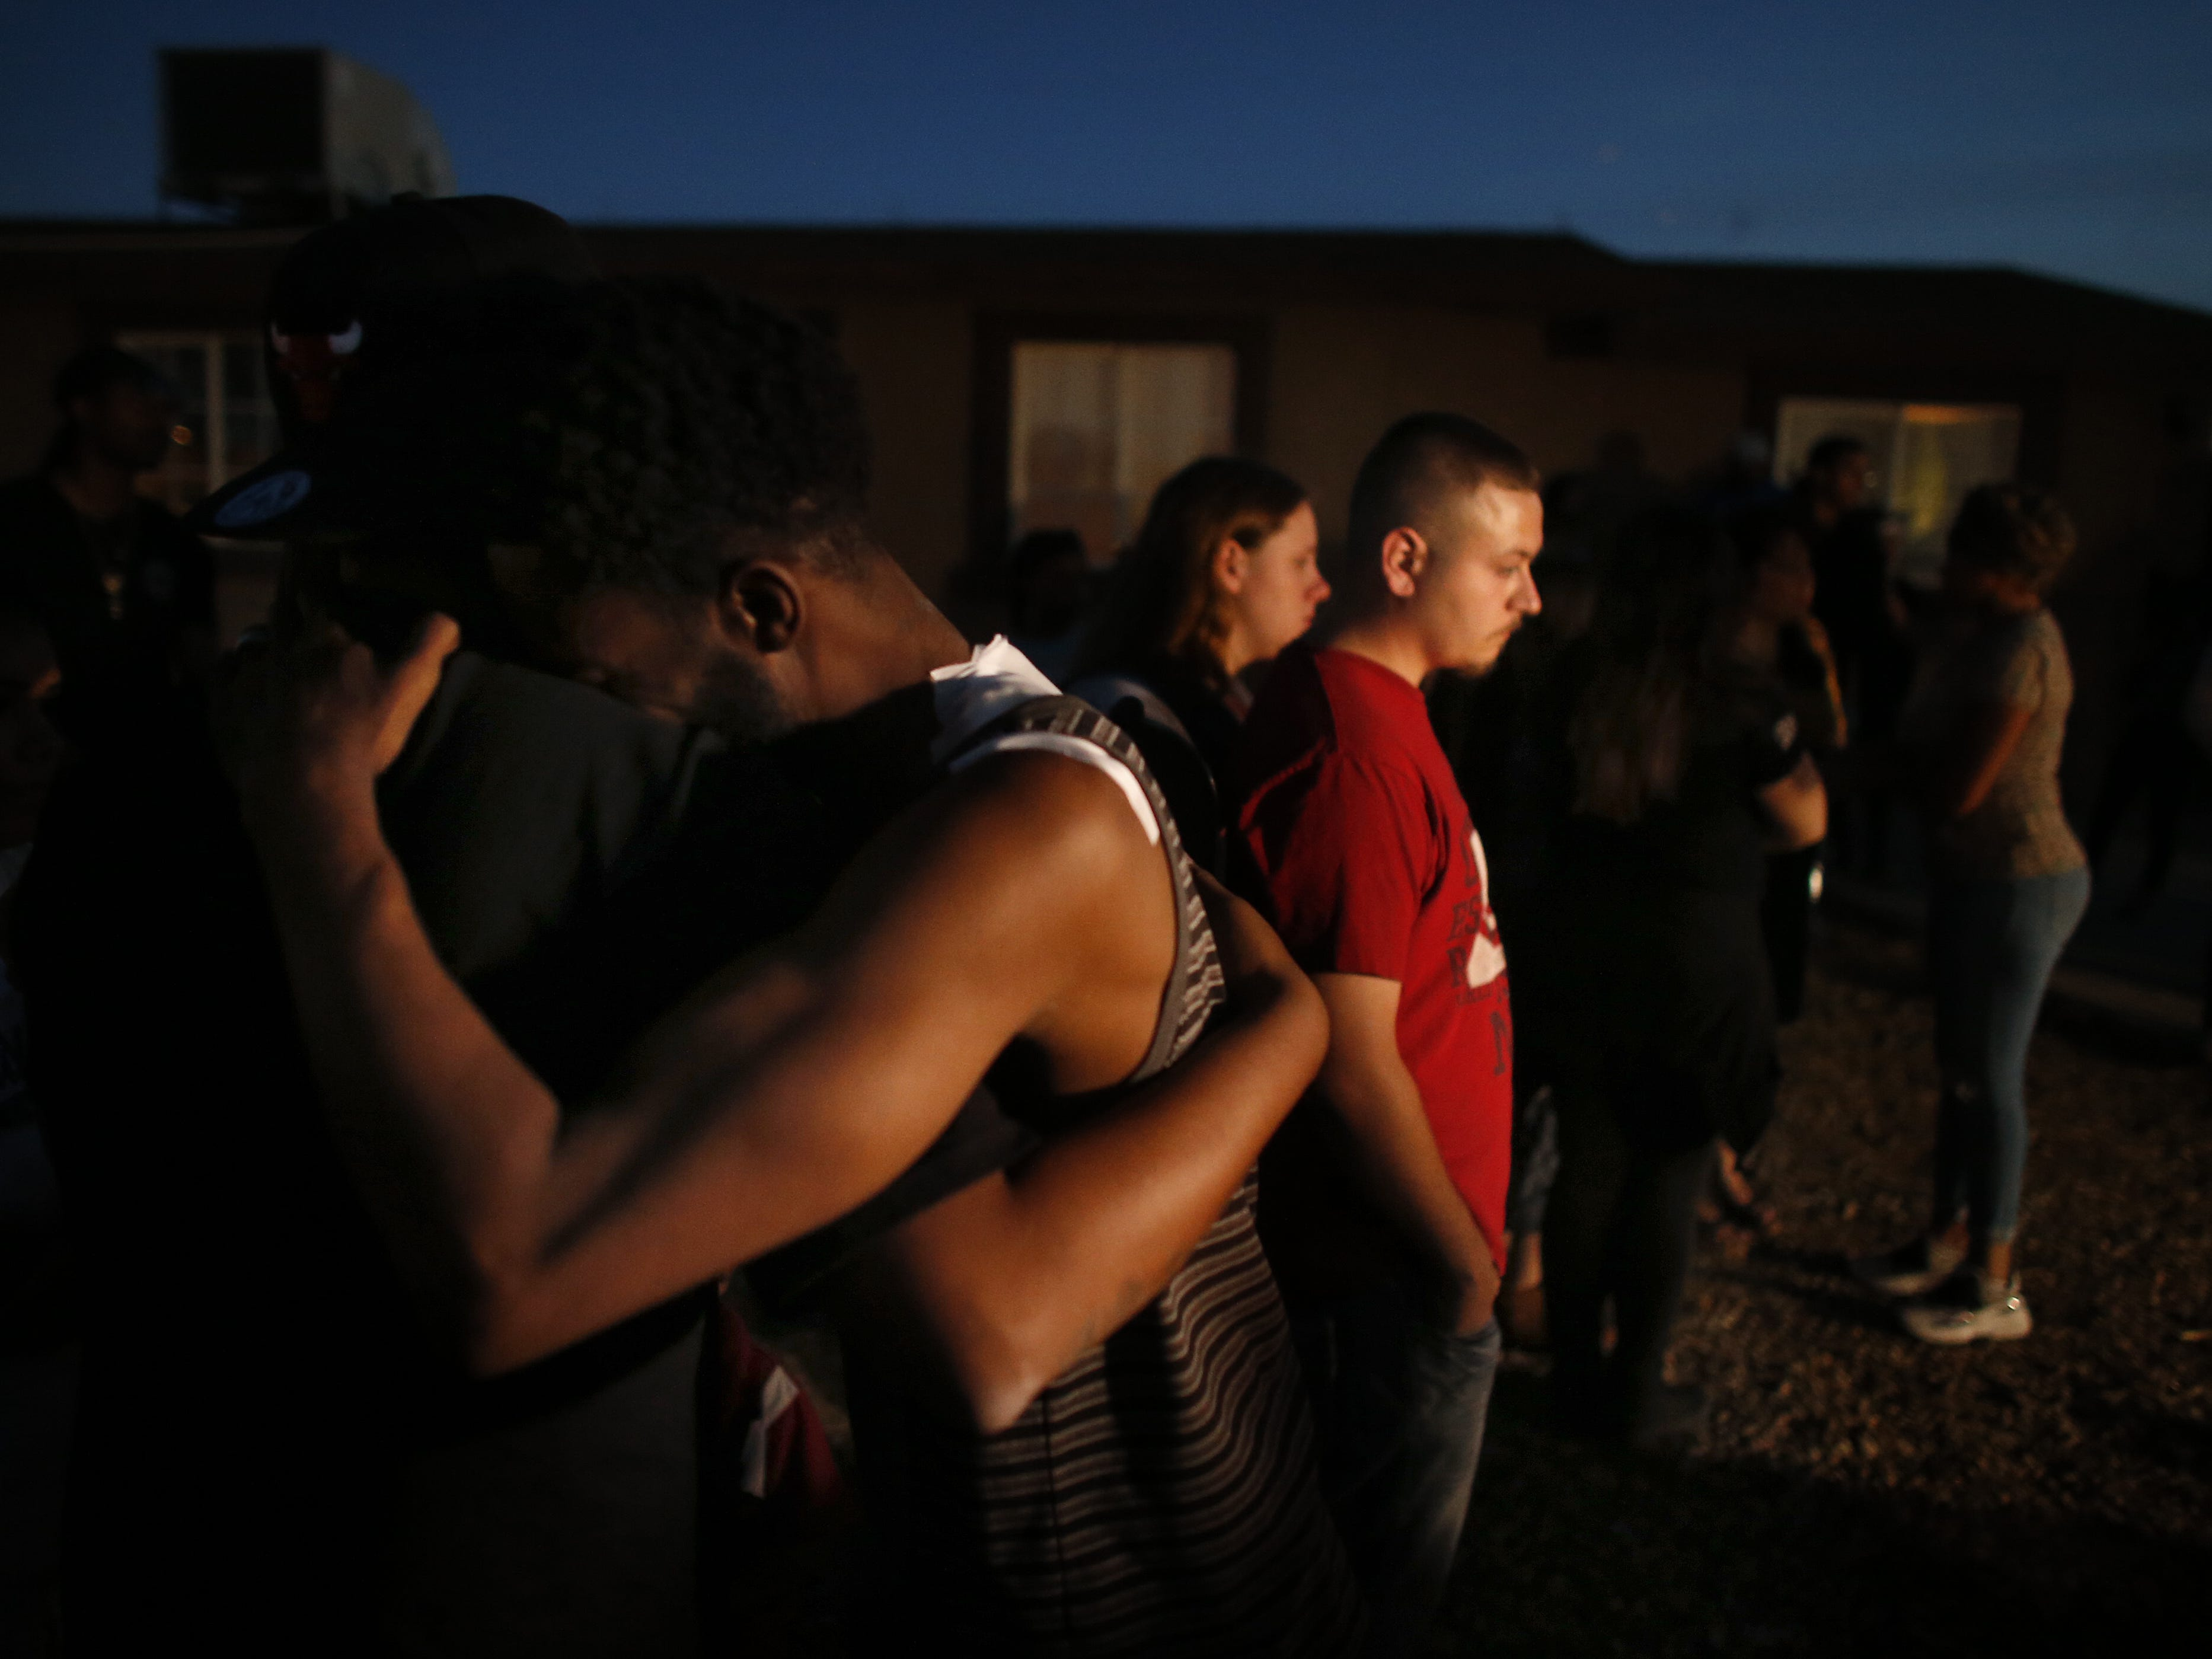 Summer's father Dharquintium Brown hugs people who came to support the family at a vigil for Summer Bell Brown on April 5, 2019, outside her home where she was shot and killed in Phoenix.